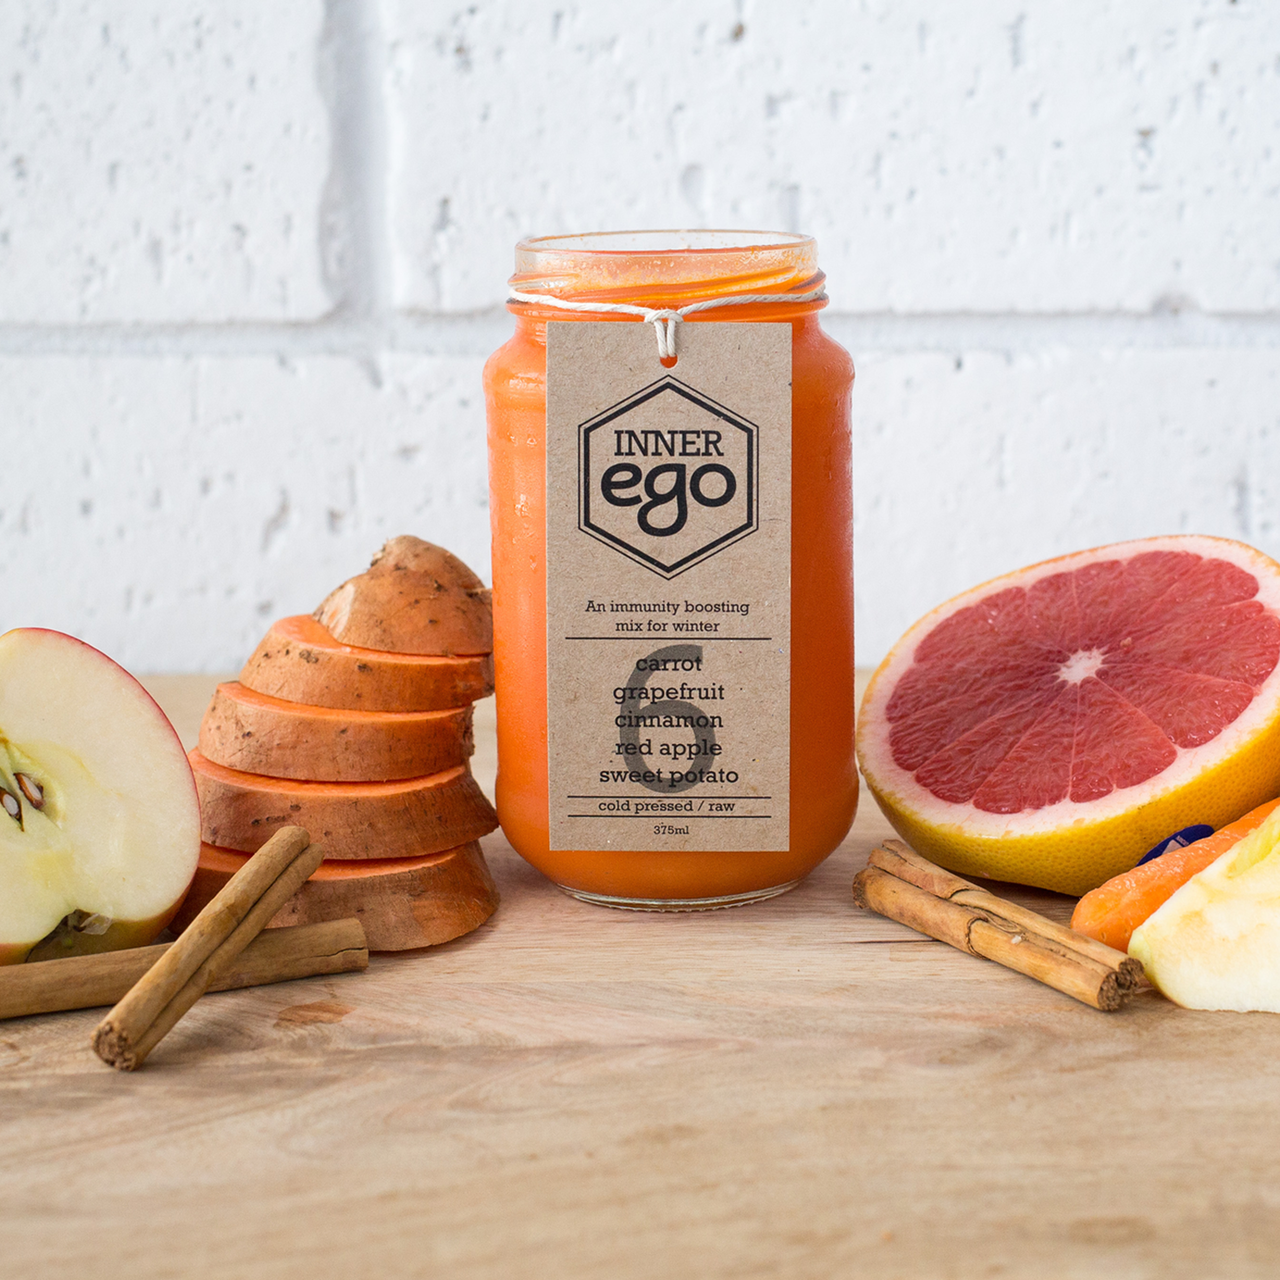 Cold Pressed Juice #6 - An Immunity Boosting Mix